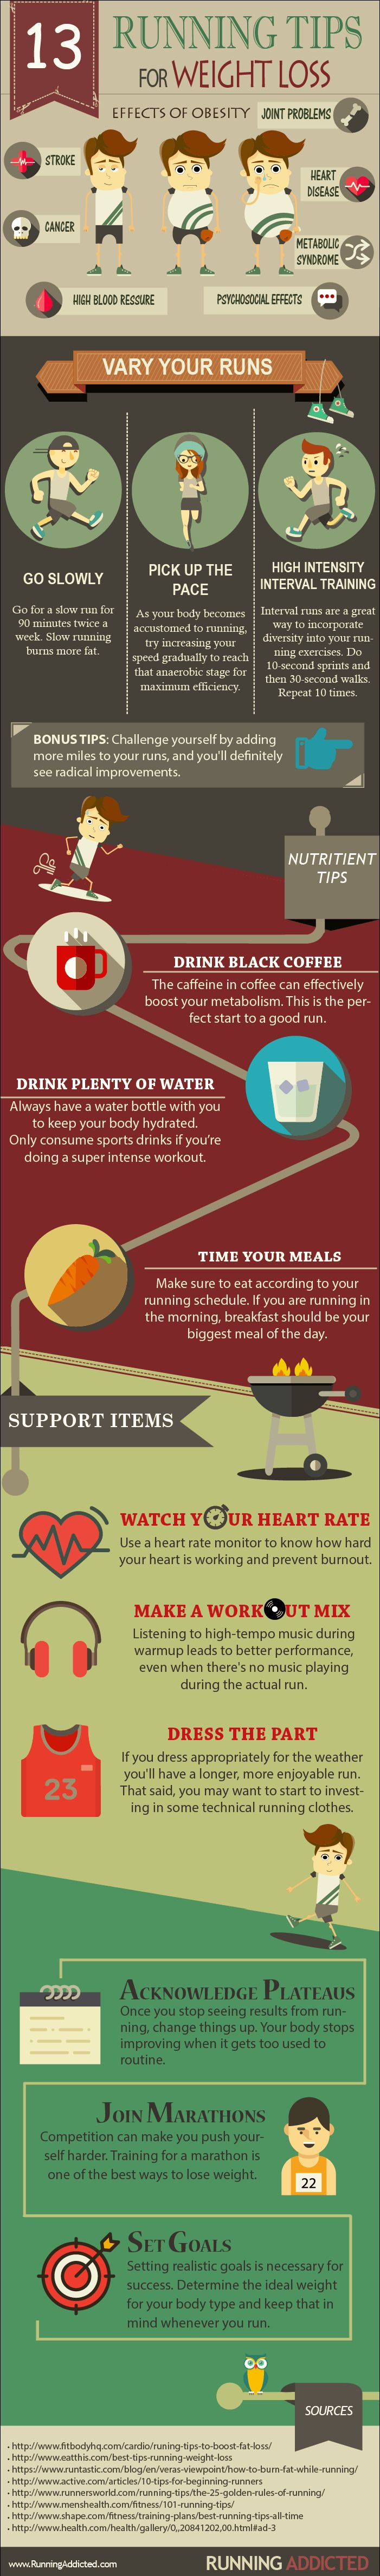 13 Running Tips For Weight Loss #Infographic #Health #WeightLoss